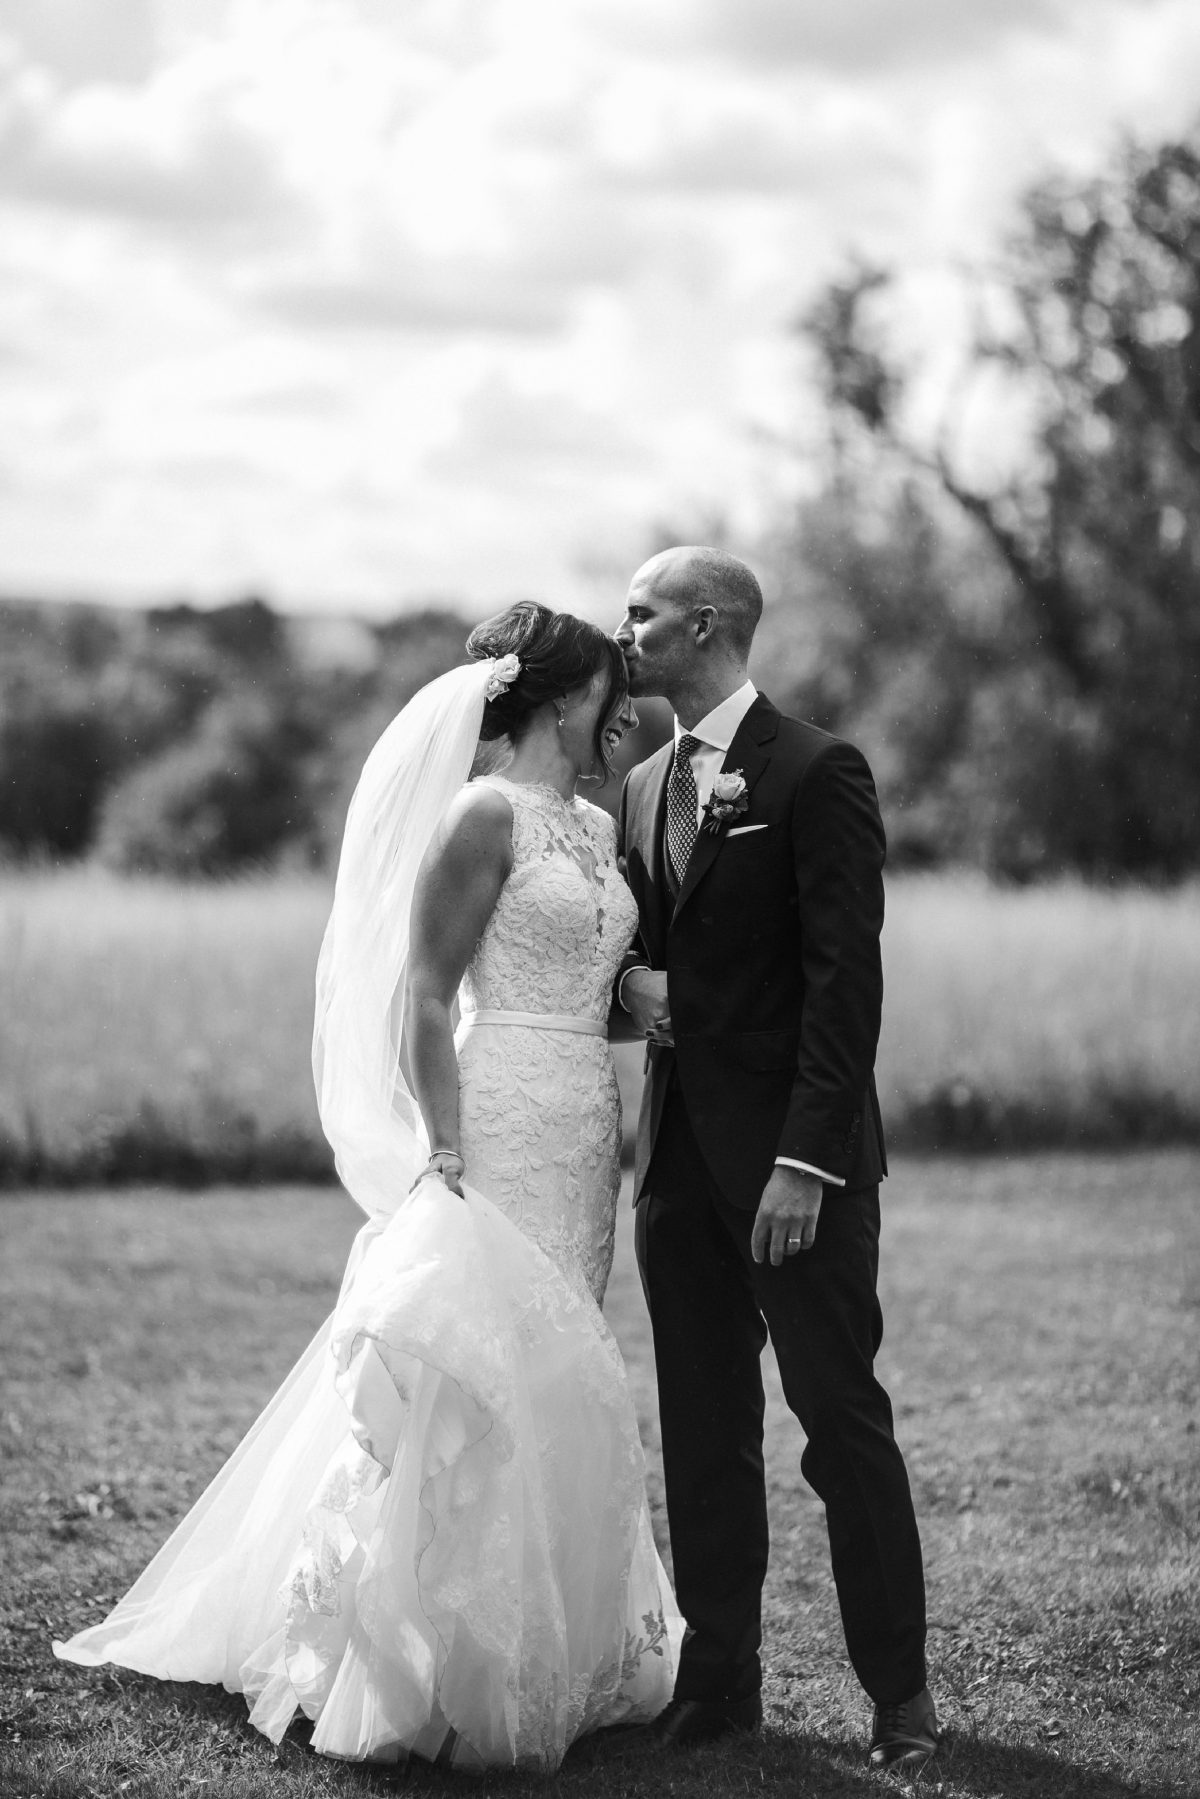 black and white image of bride and groom kiss during the wedding portrait at Merriscourt Barn Wedding venue by Cotswolds wedding photographer